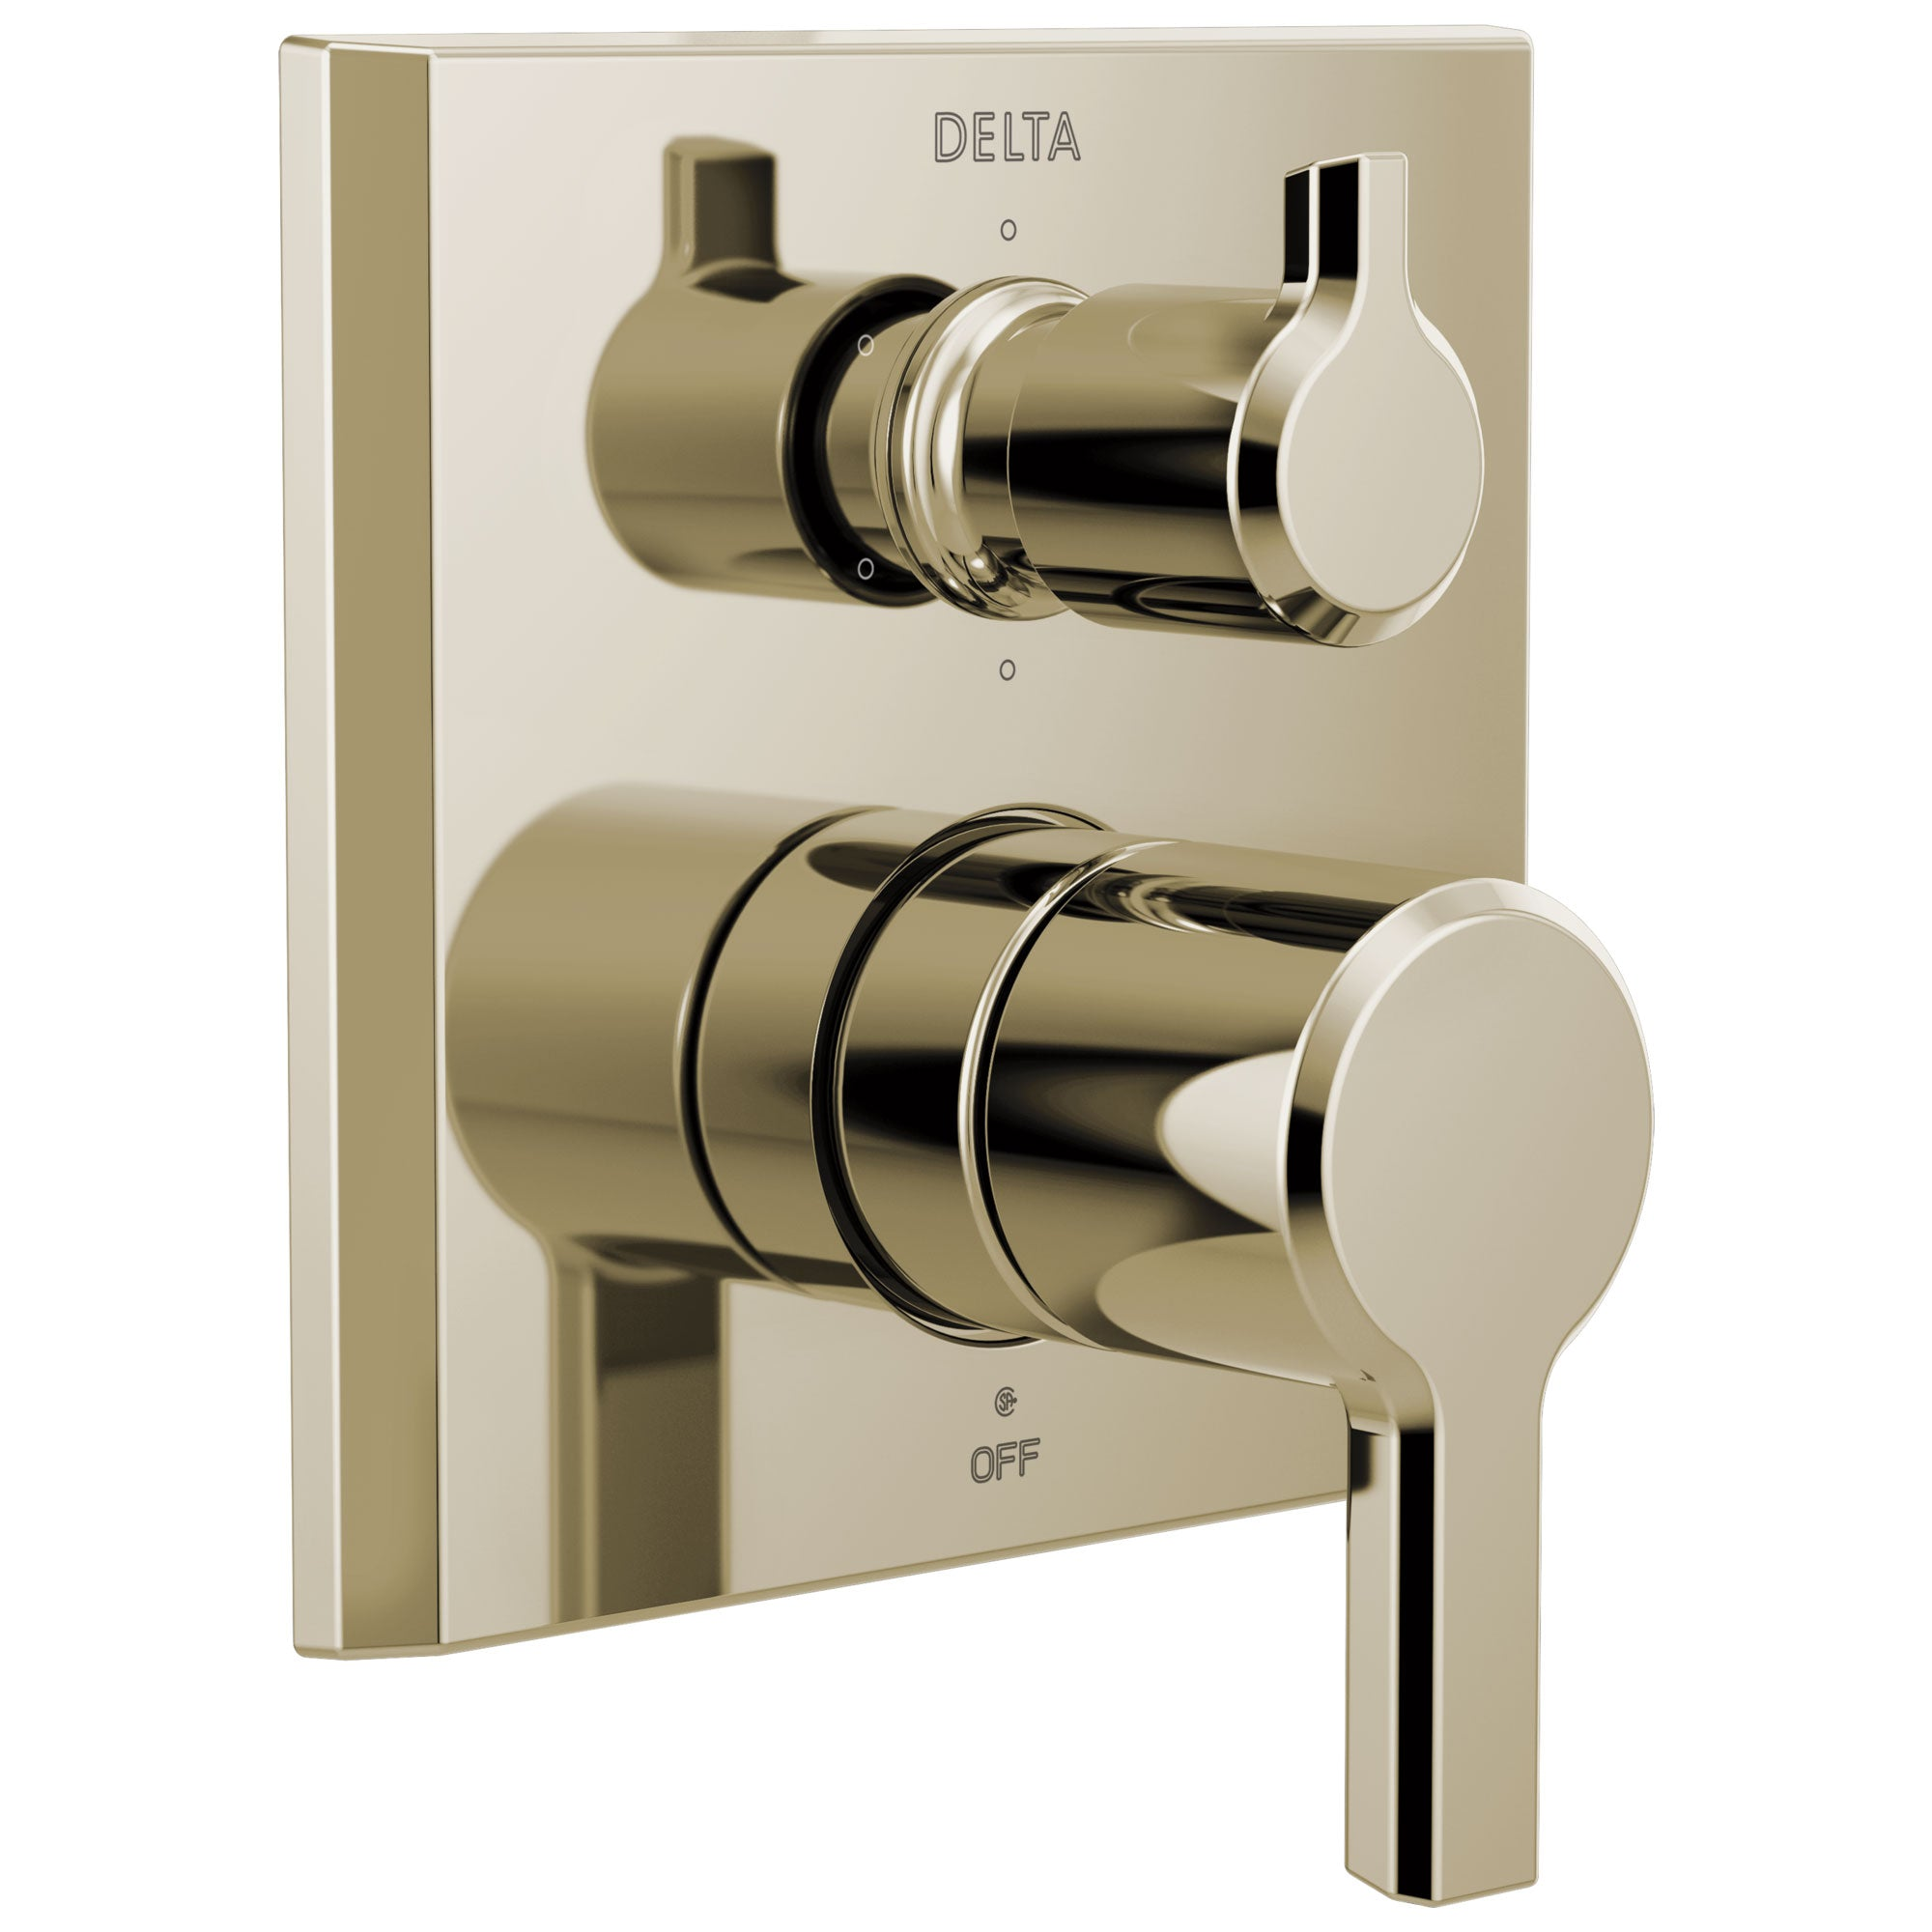 Delta Pivotal Polished Nickel Finish Monitor 14 Series Integrated 6 Function Diverter Shower Control Trim Kit (Requires Valve) DT24999PN